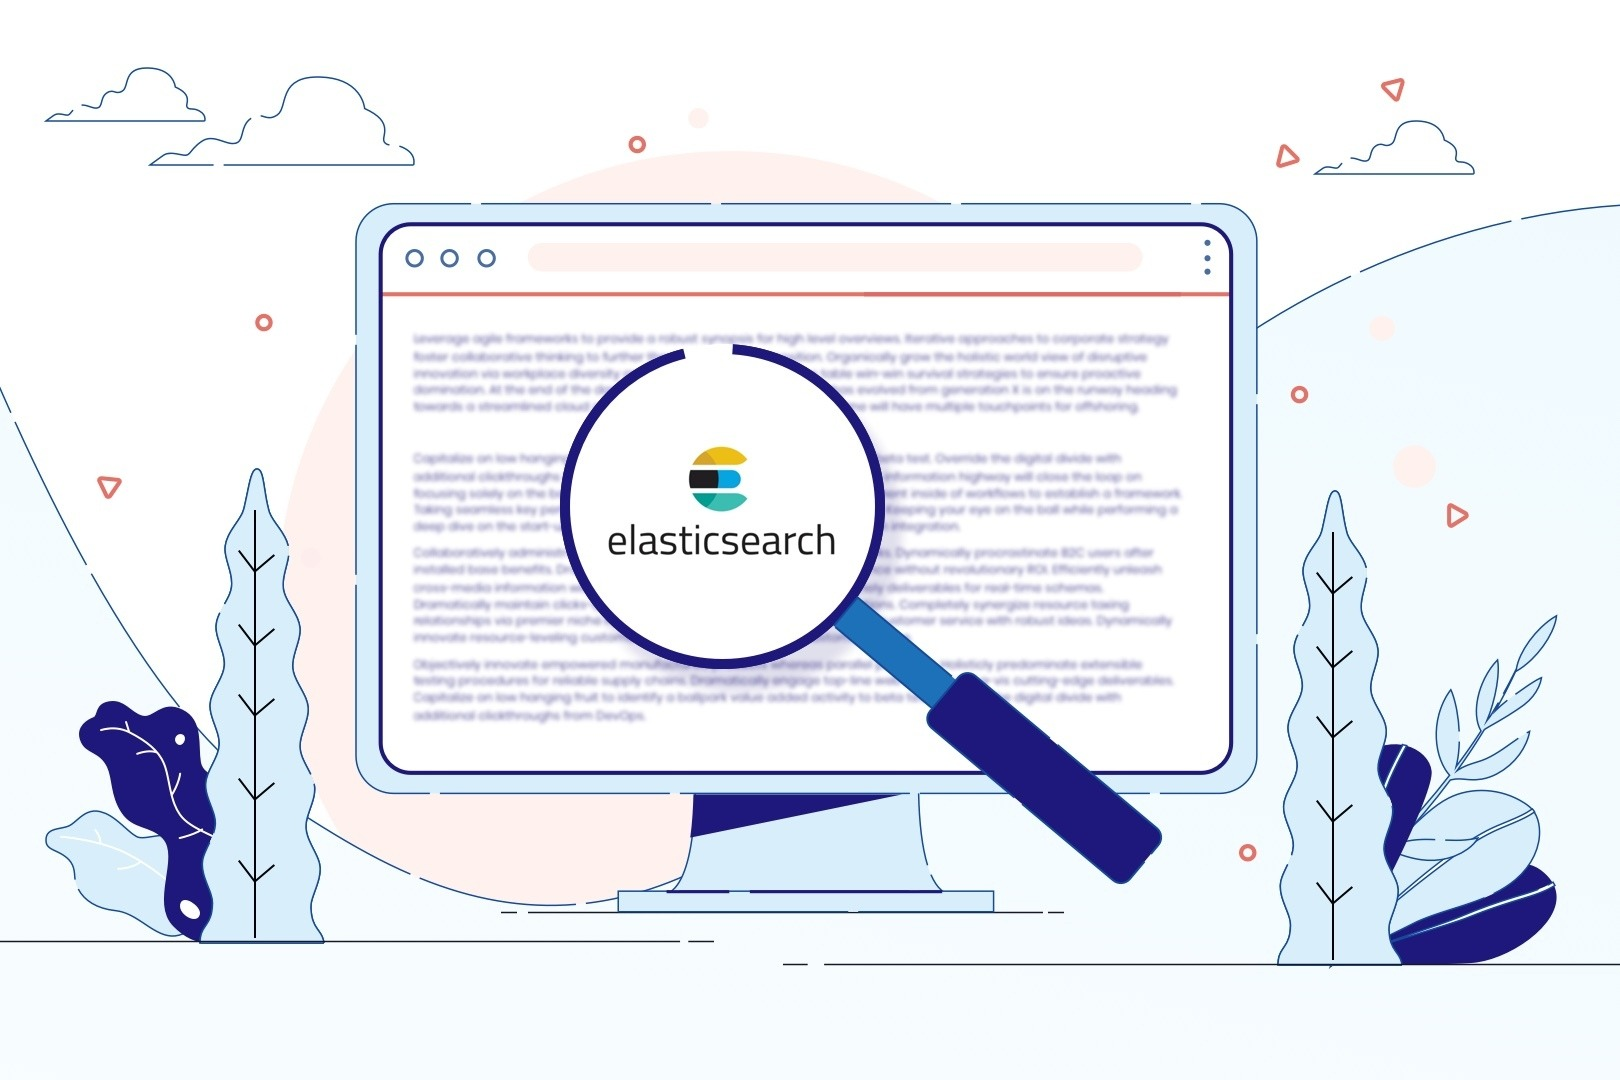 Elasticsearch tutorial for beginners. Take your first steps and learn practical tips with Node.js specialist